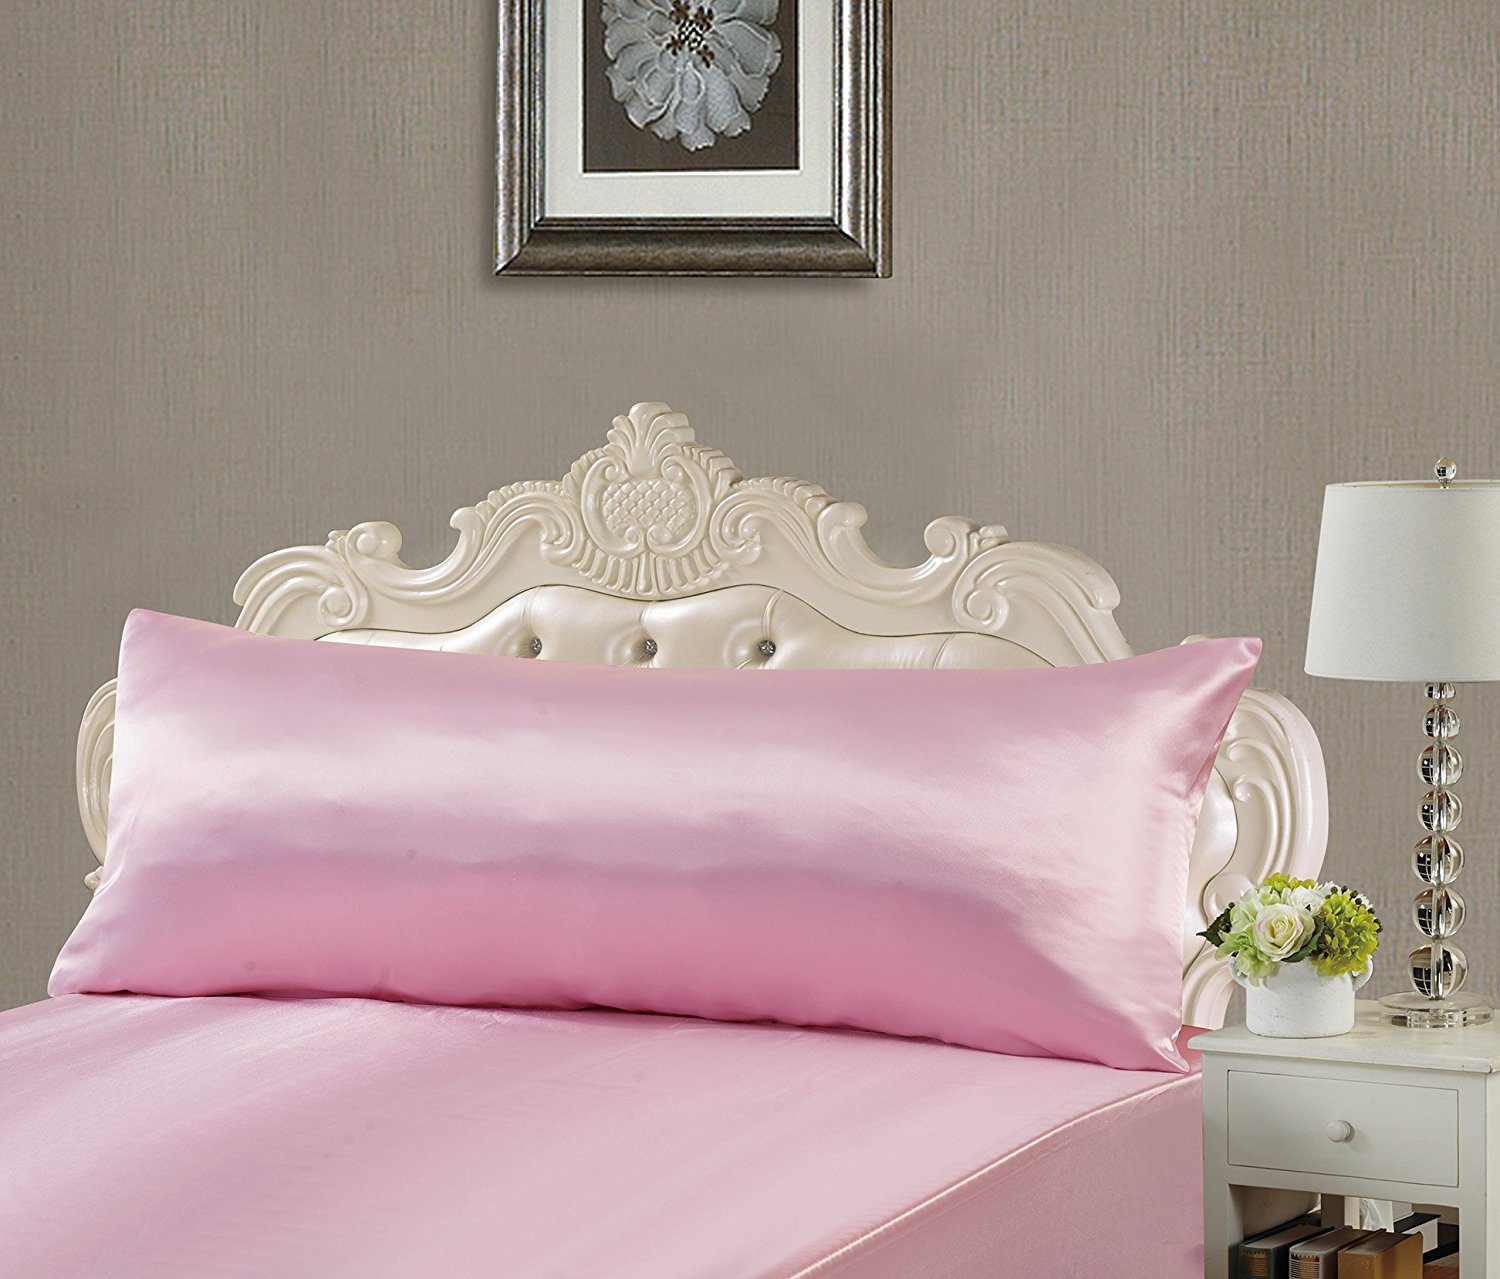 Satin Pillowcases With Zipper Deals Finders Amazon Super Soft Silky Satin Body Pillowcase